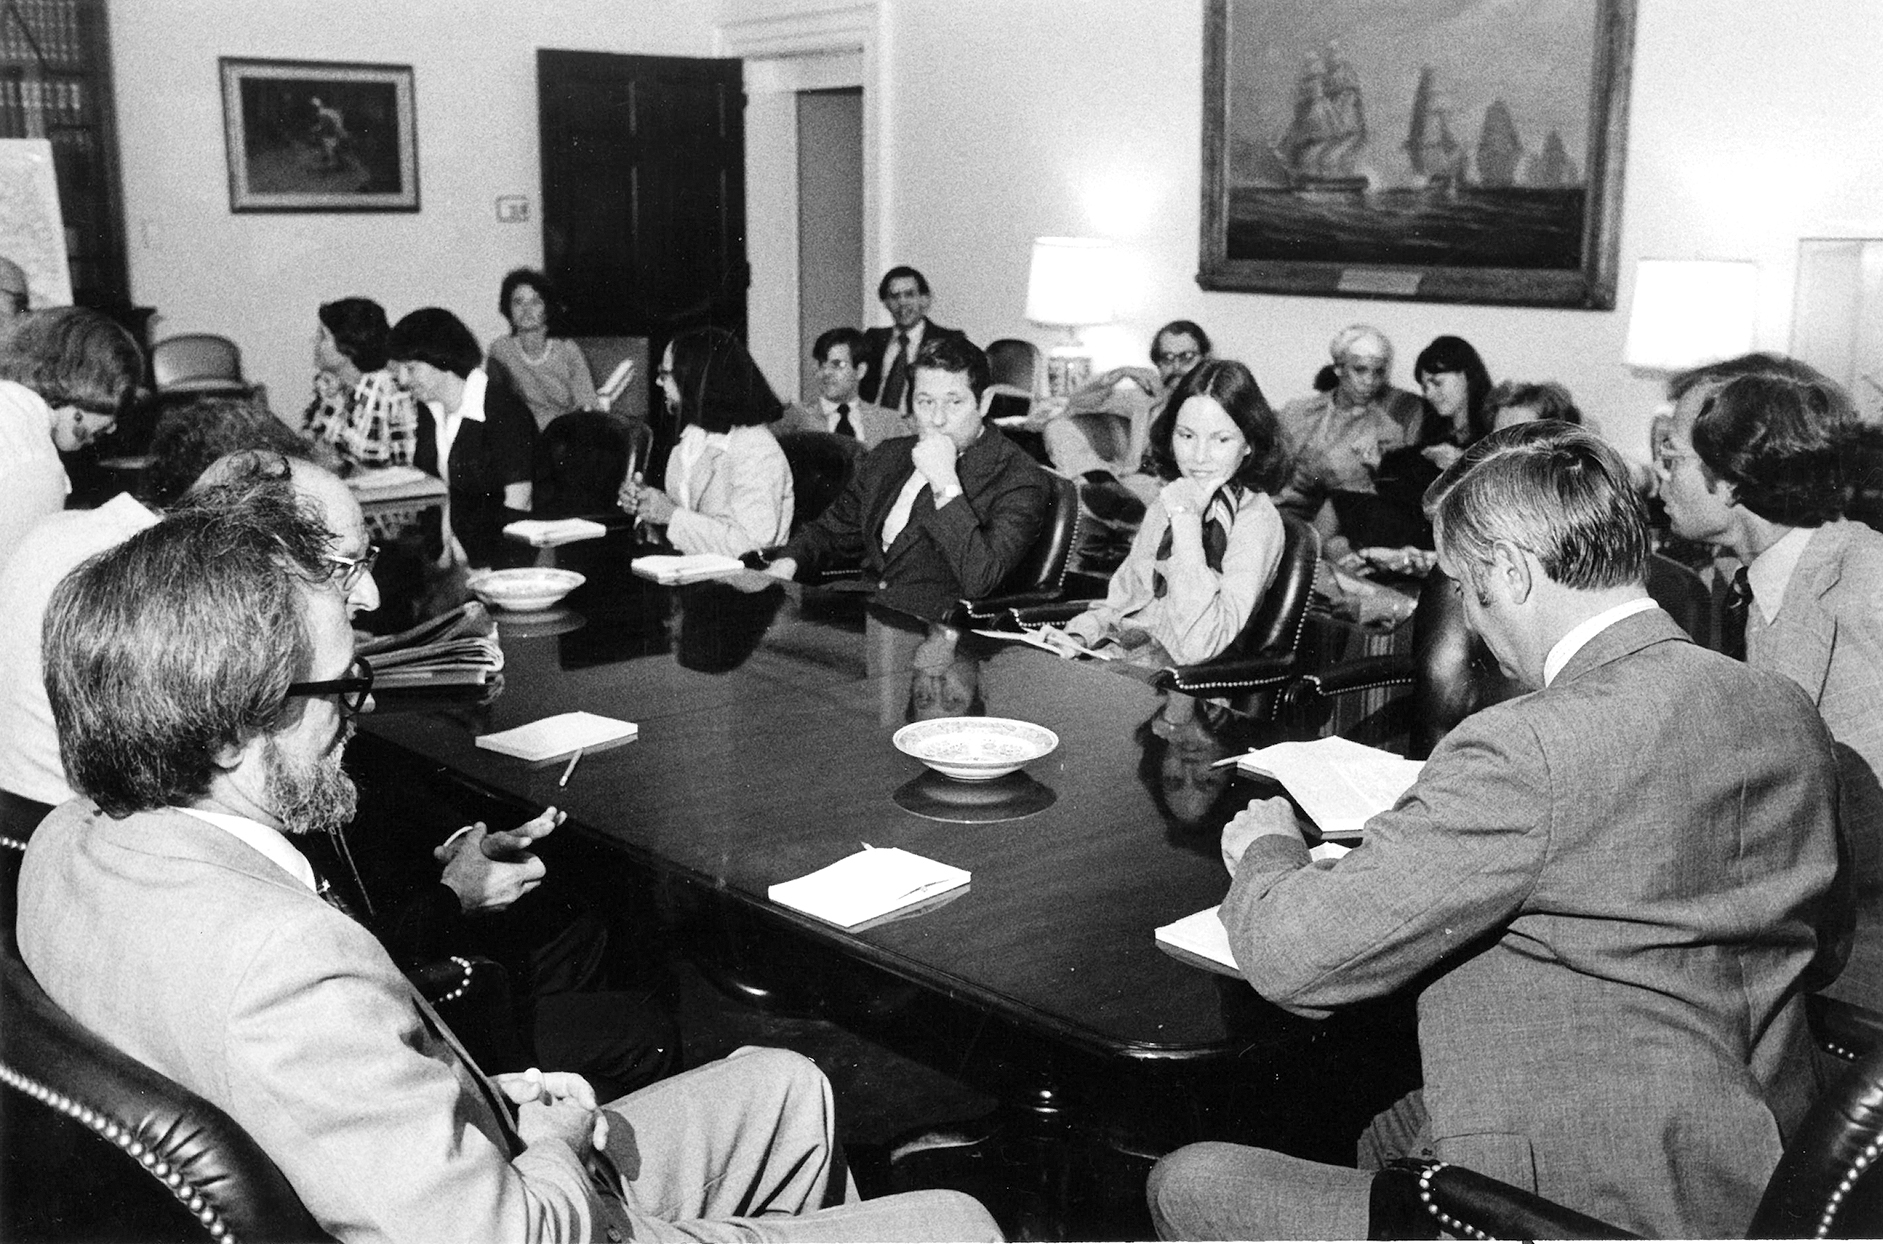 Remembering Walter Mondale's commitment to early childhood policy